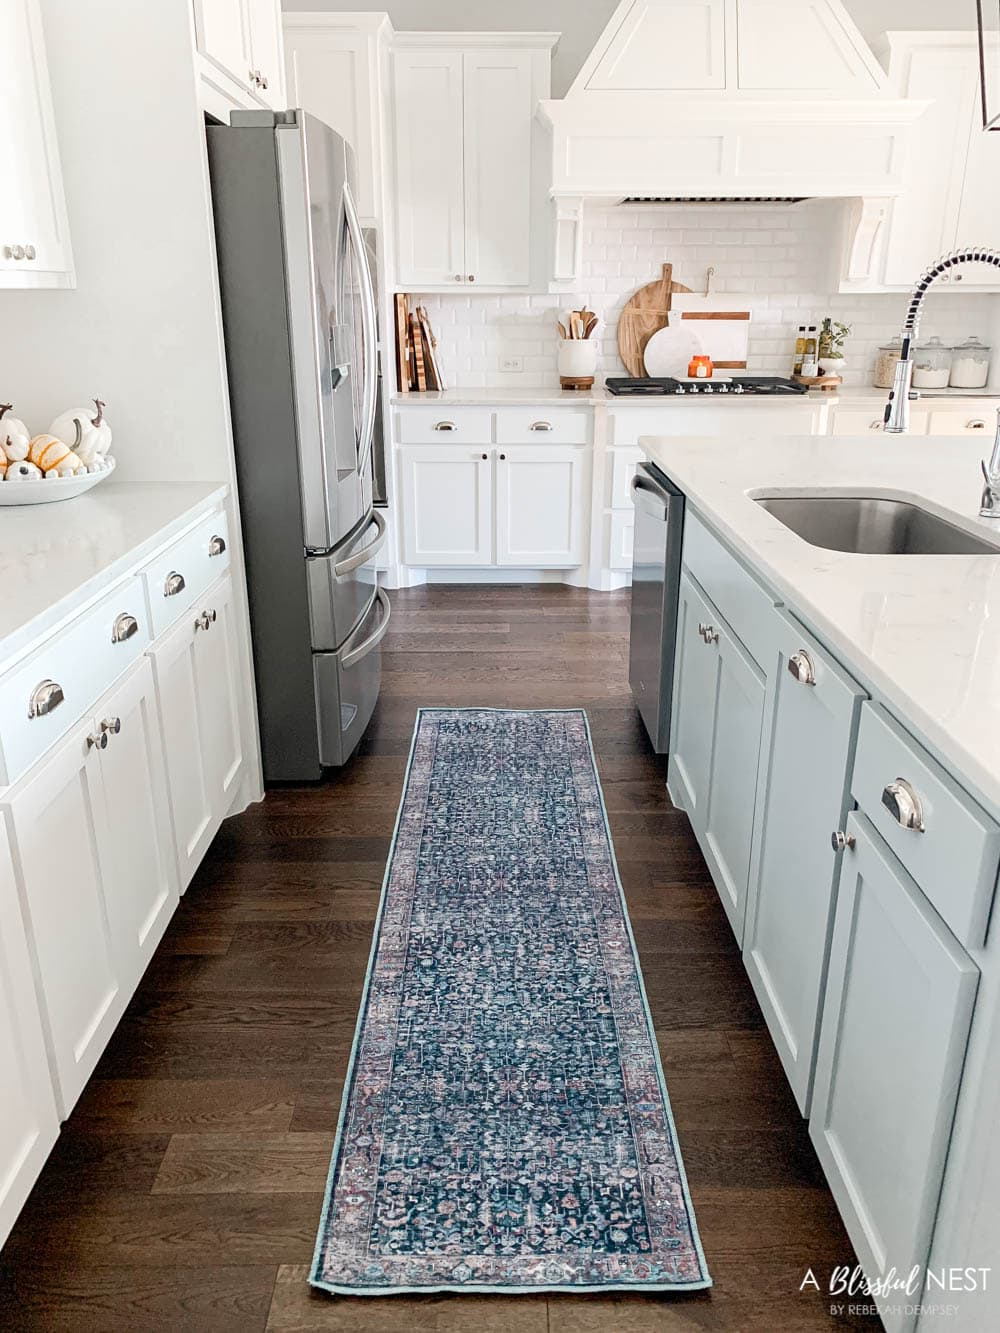 My favorite washable rugs and how to care for them. #ABlissfulNest #arearug